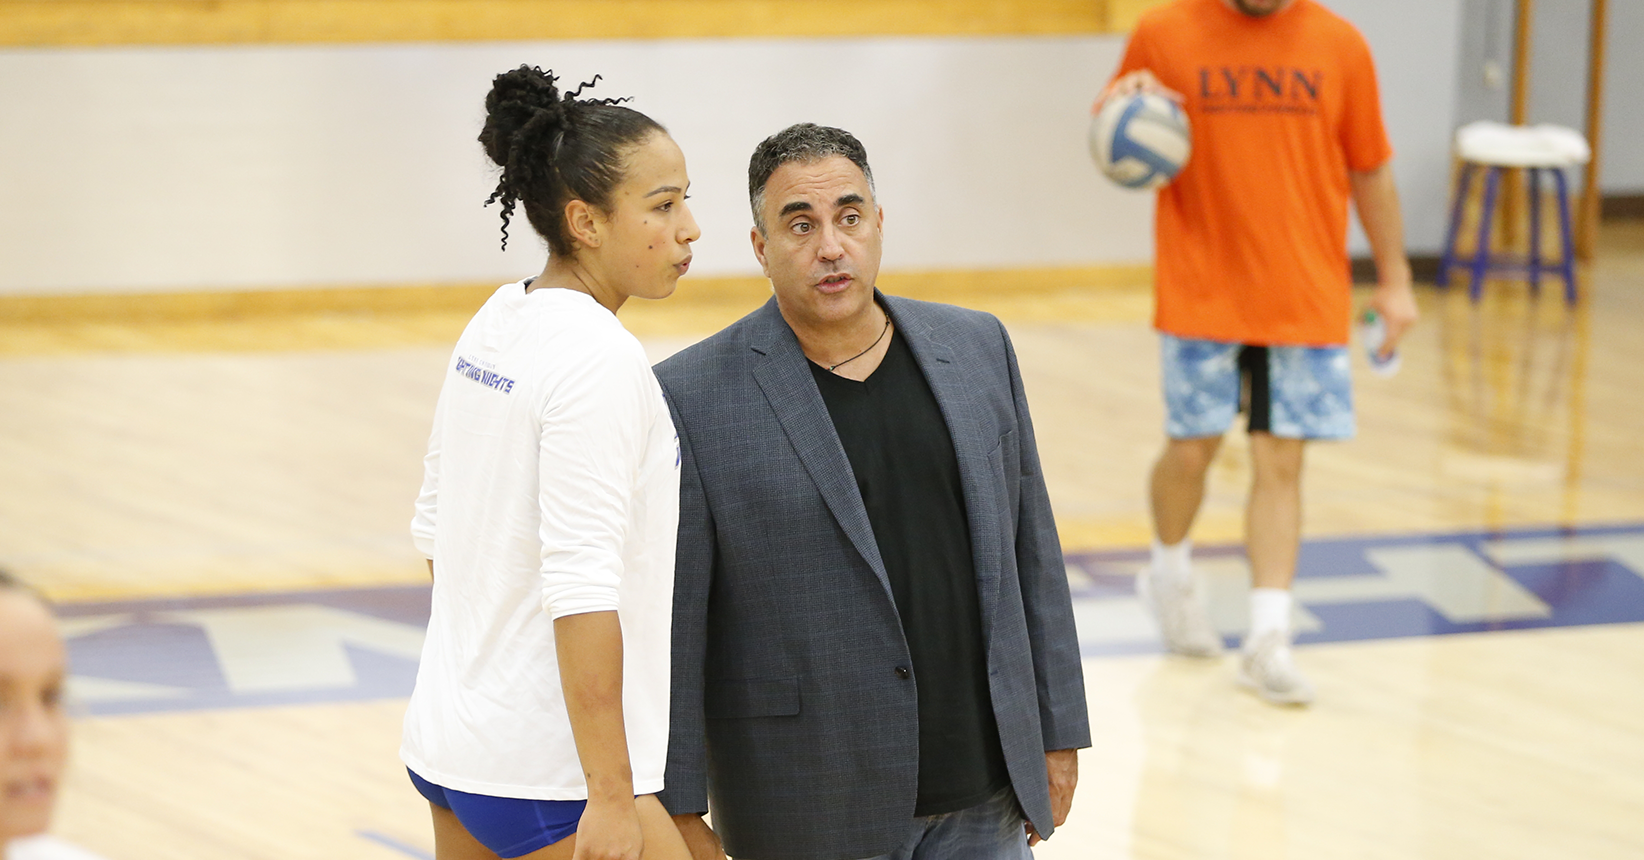 Volleyball Coaching Staff leads Team Florida HP to Record Medal Count